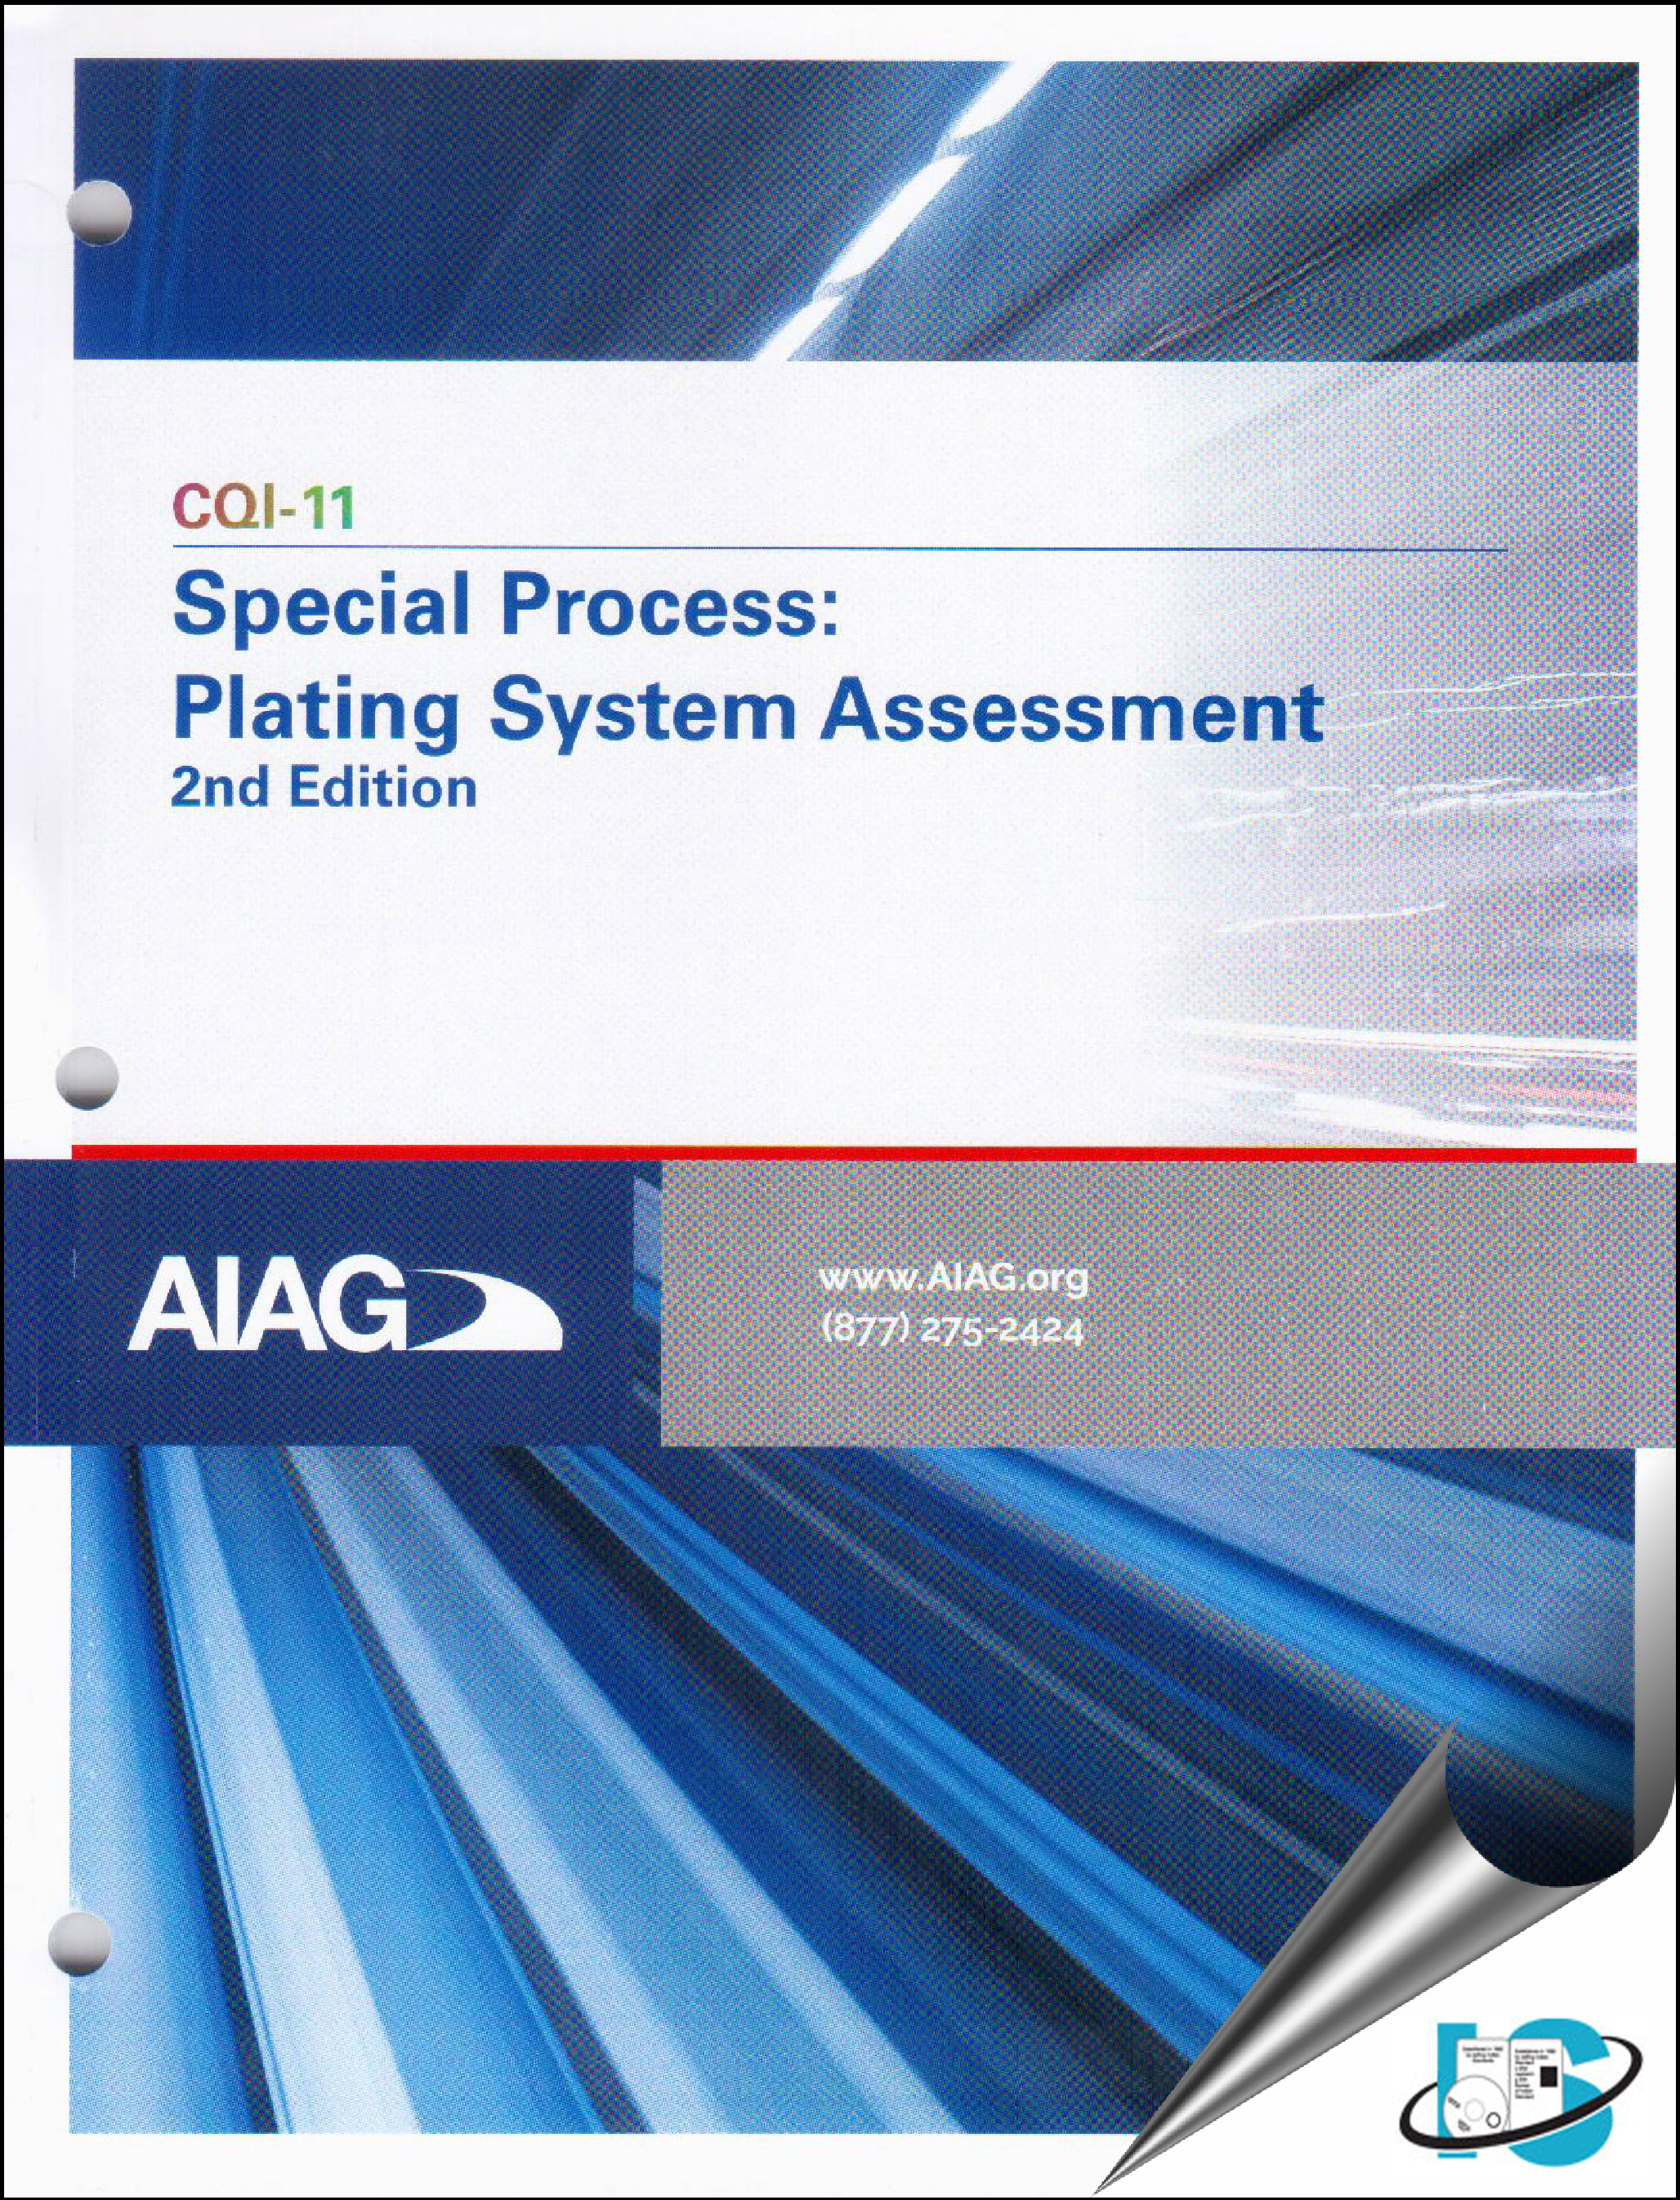 Cqi 11 Special Process Plating System Assessment 2nd Edition Aiag